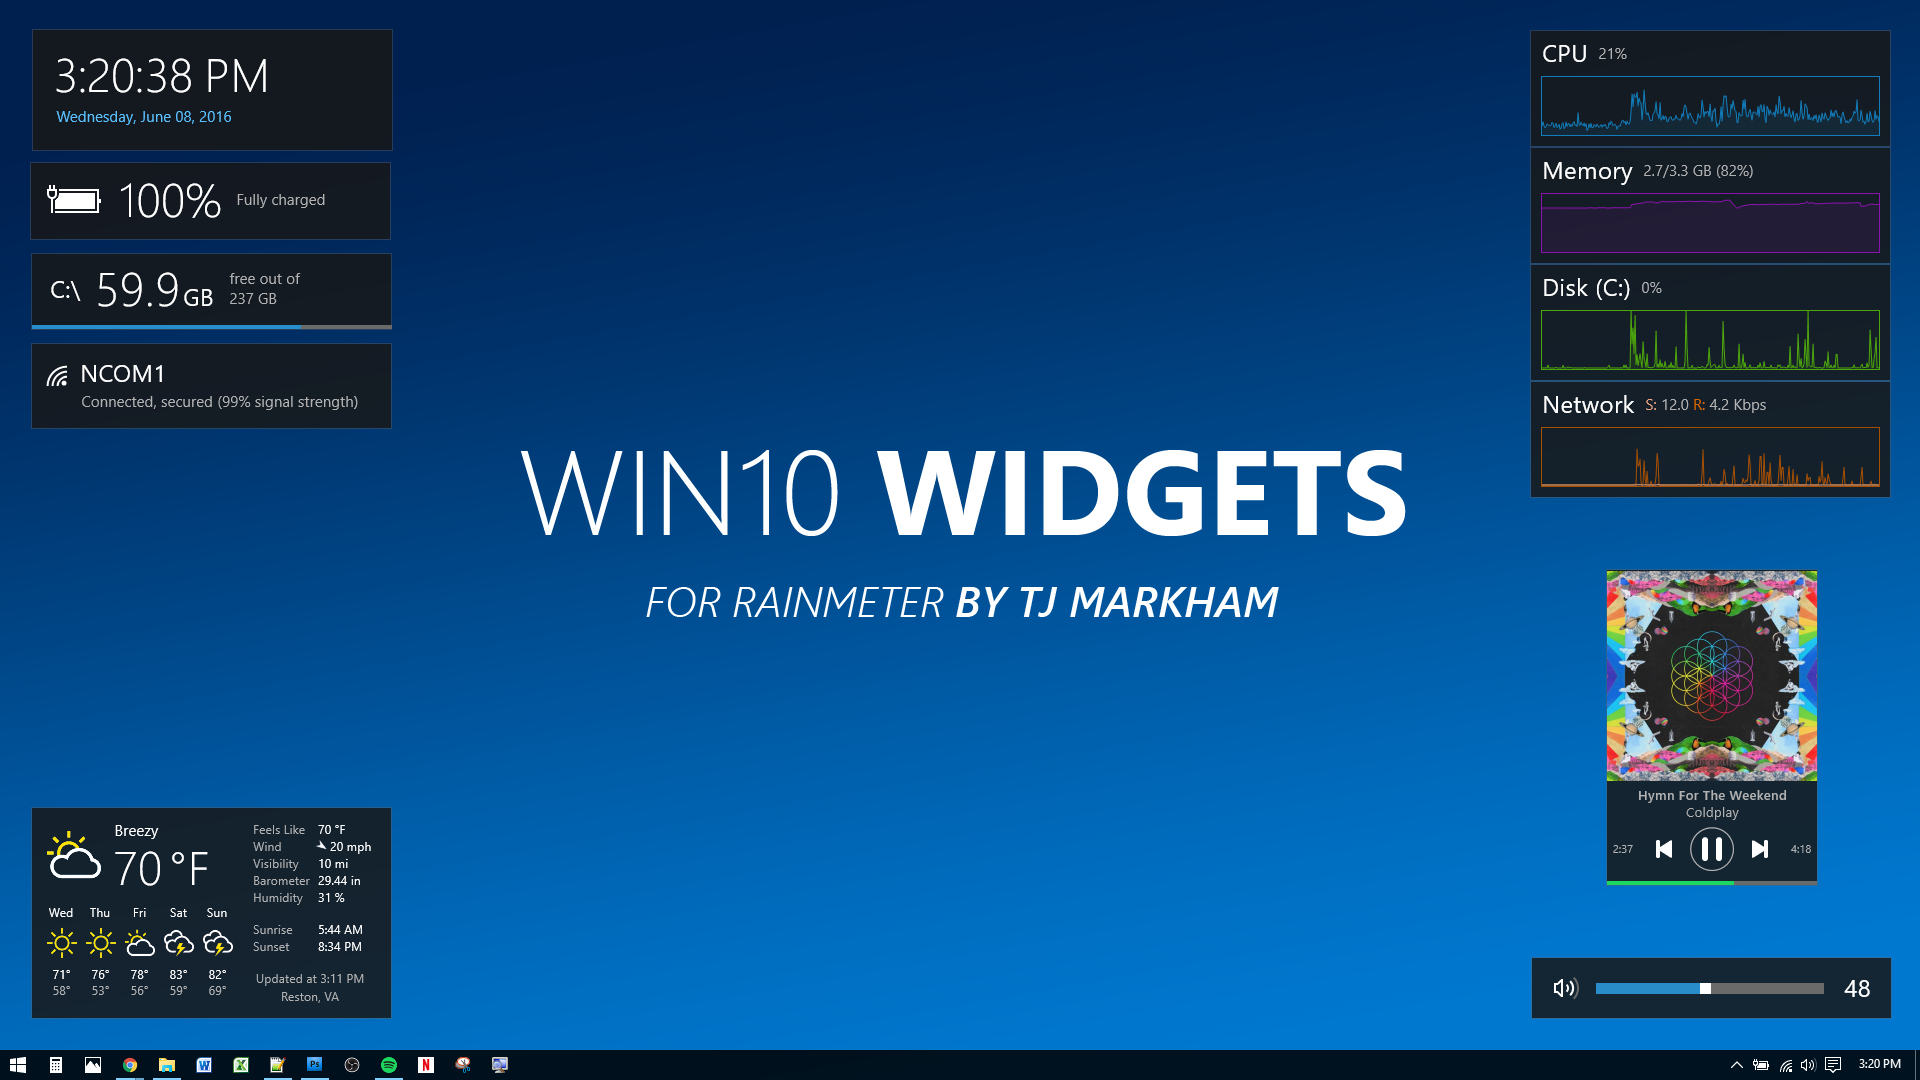 Win10 Widgets  Widgets For Windows 10 pertaining to Windows 10 Desktop Calendar